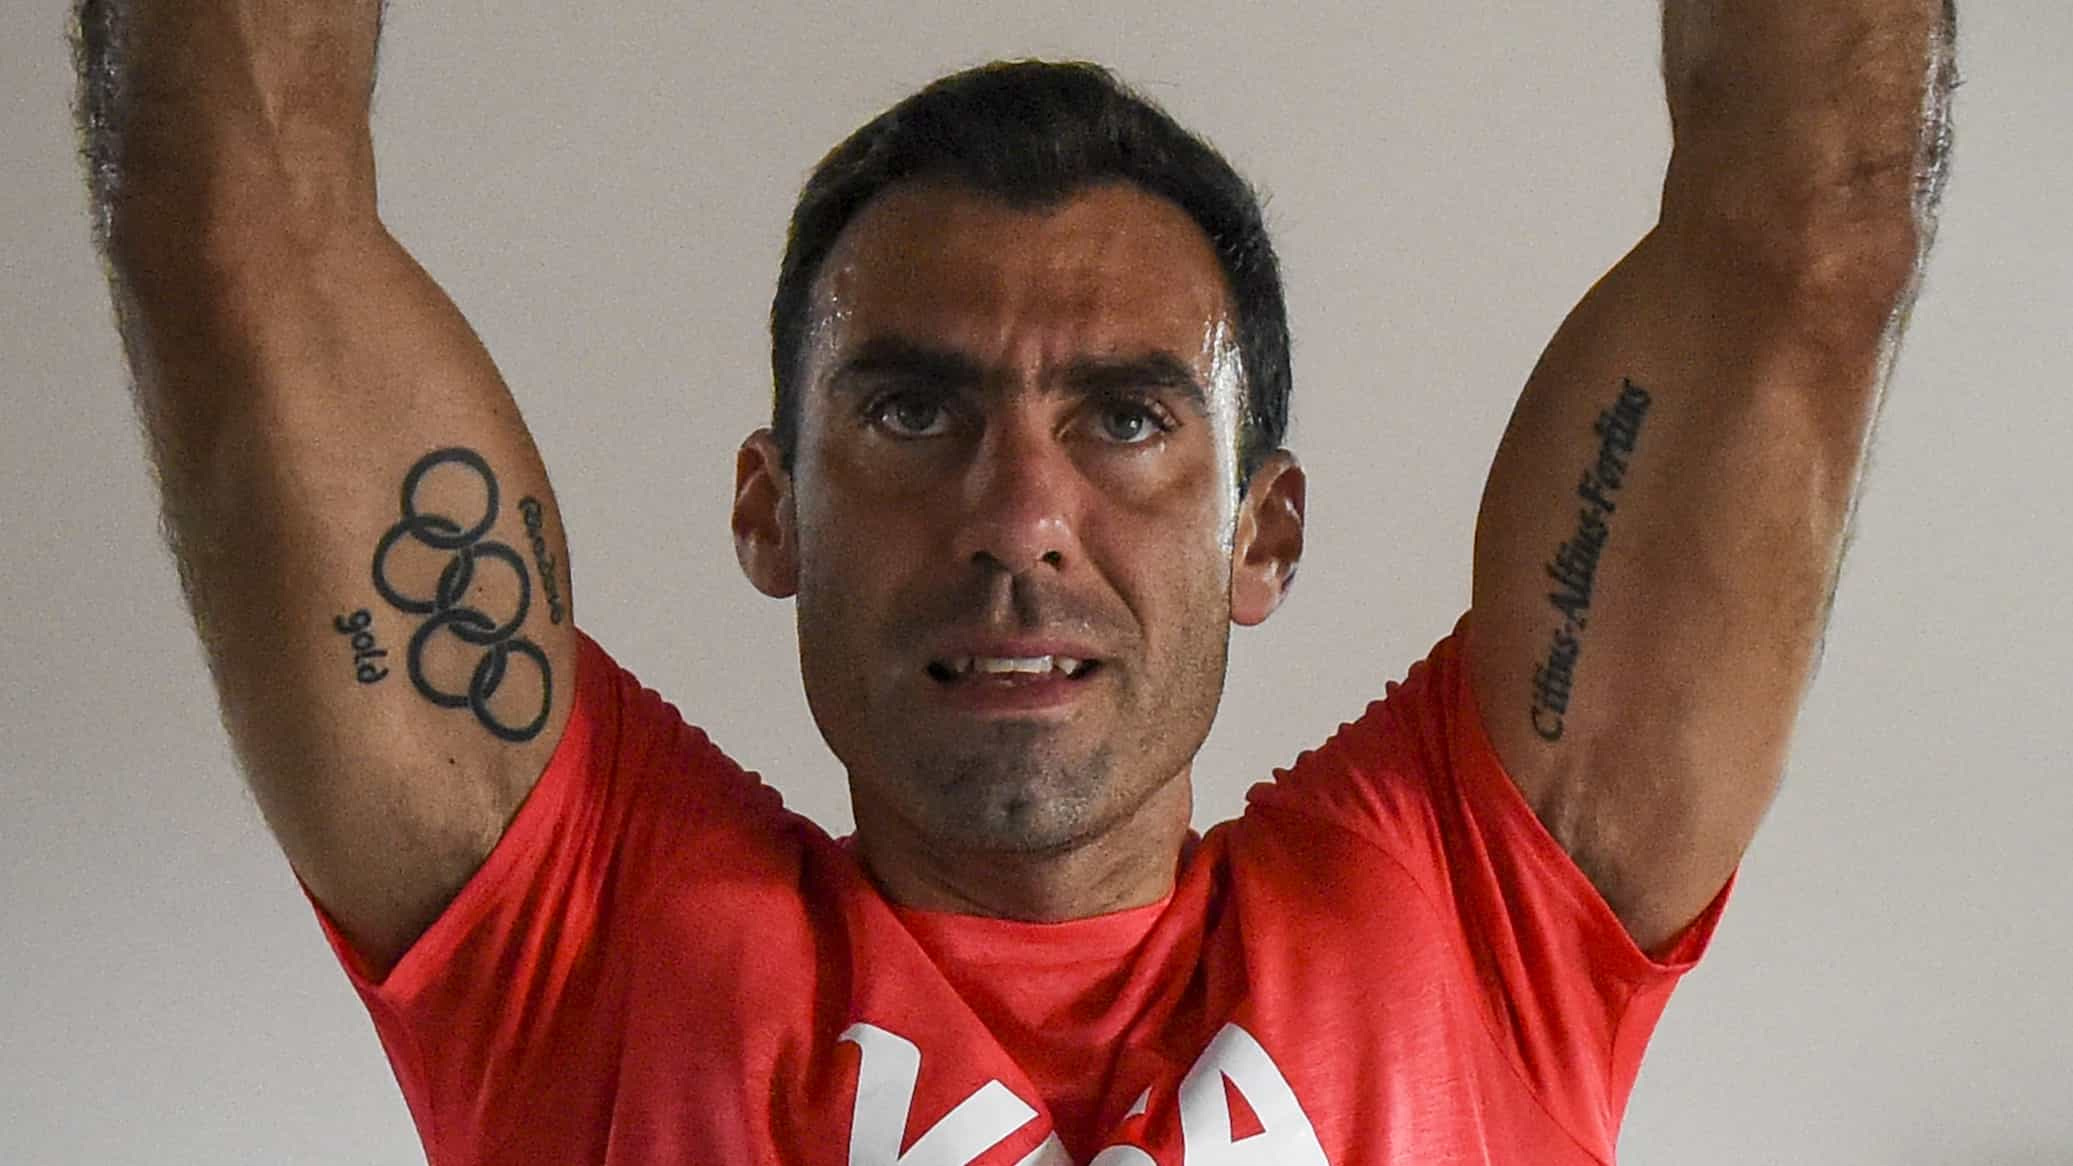 Juan Manuel Vivaldi's Olympic tattoo is on full display during training. (credit: Getty Images)